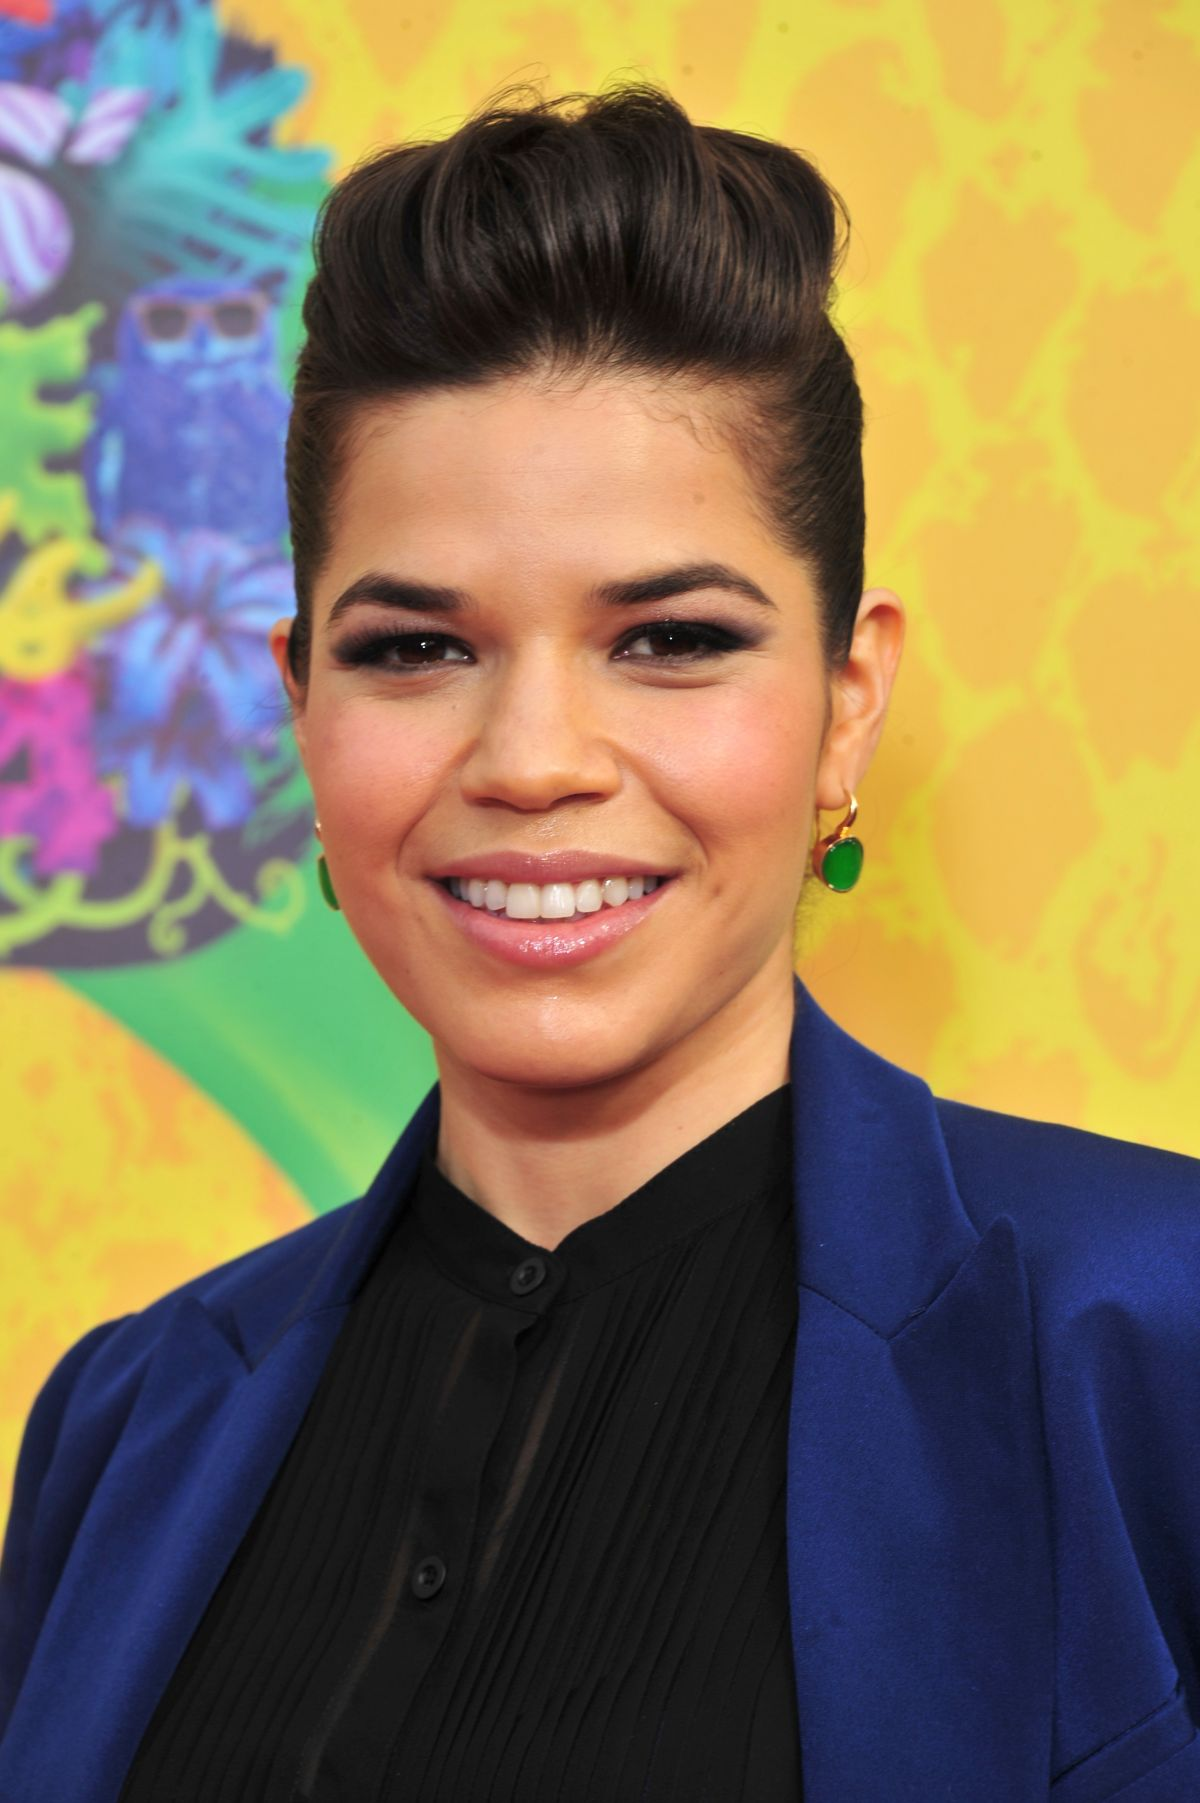 america ferrera 2016america ferrera weight loss, america ferrera good wife, america ferrera and eric mabius, america ferrera and her husband, america ferrera good wife episodes, america ferrera movies, america ferrera vitalii, america ferrera tumblr, america ferrera chicago, america ferrera wiki, america ferrera washington dc, america ferrera instagram, america ferrera 2016, america ferrera youtube